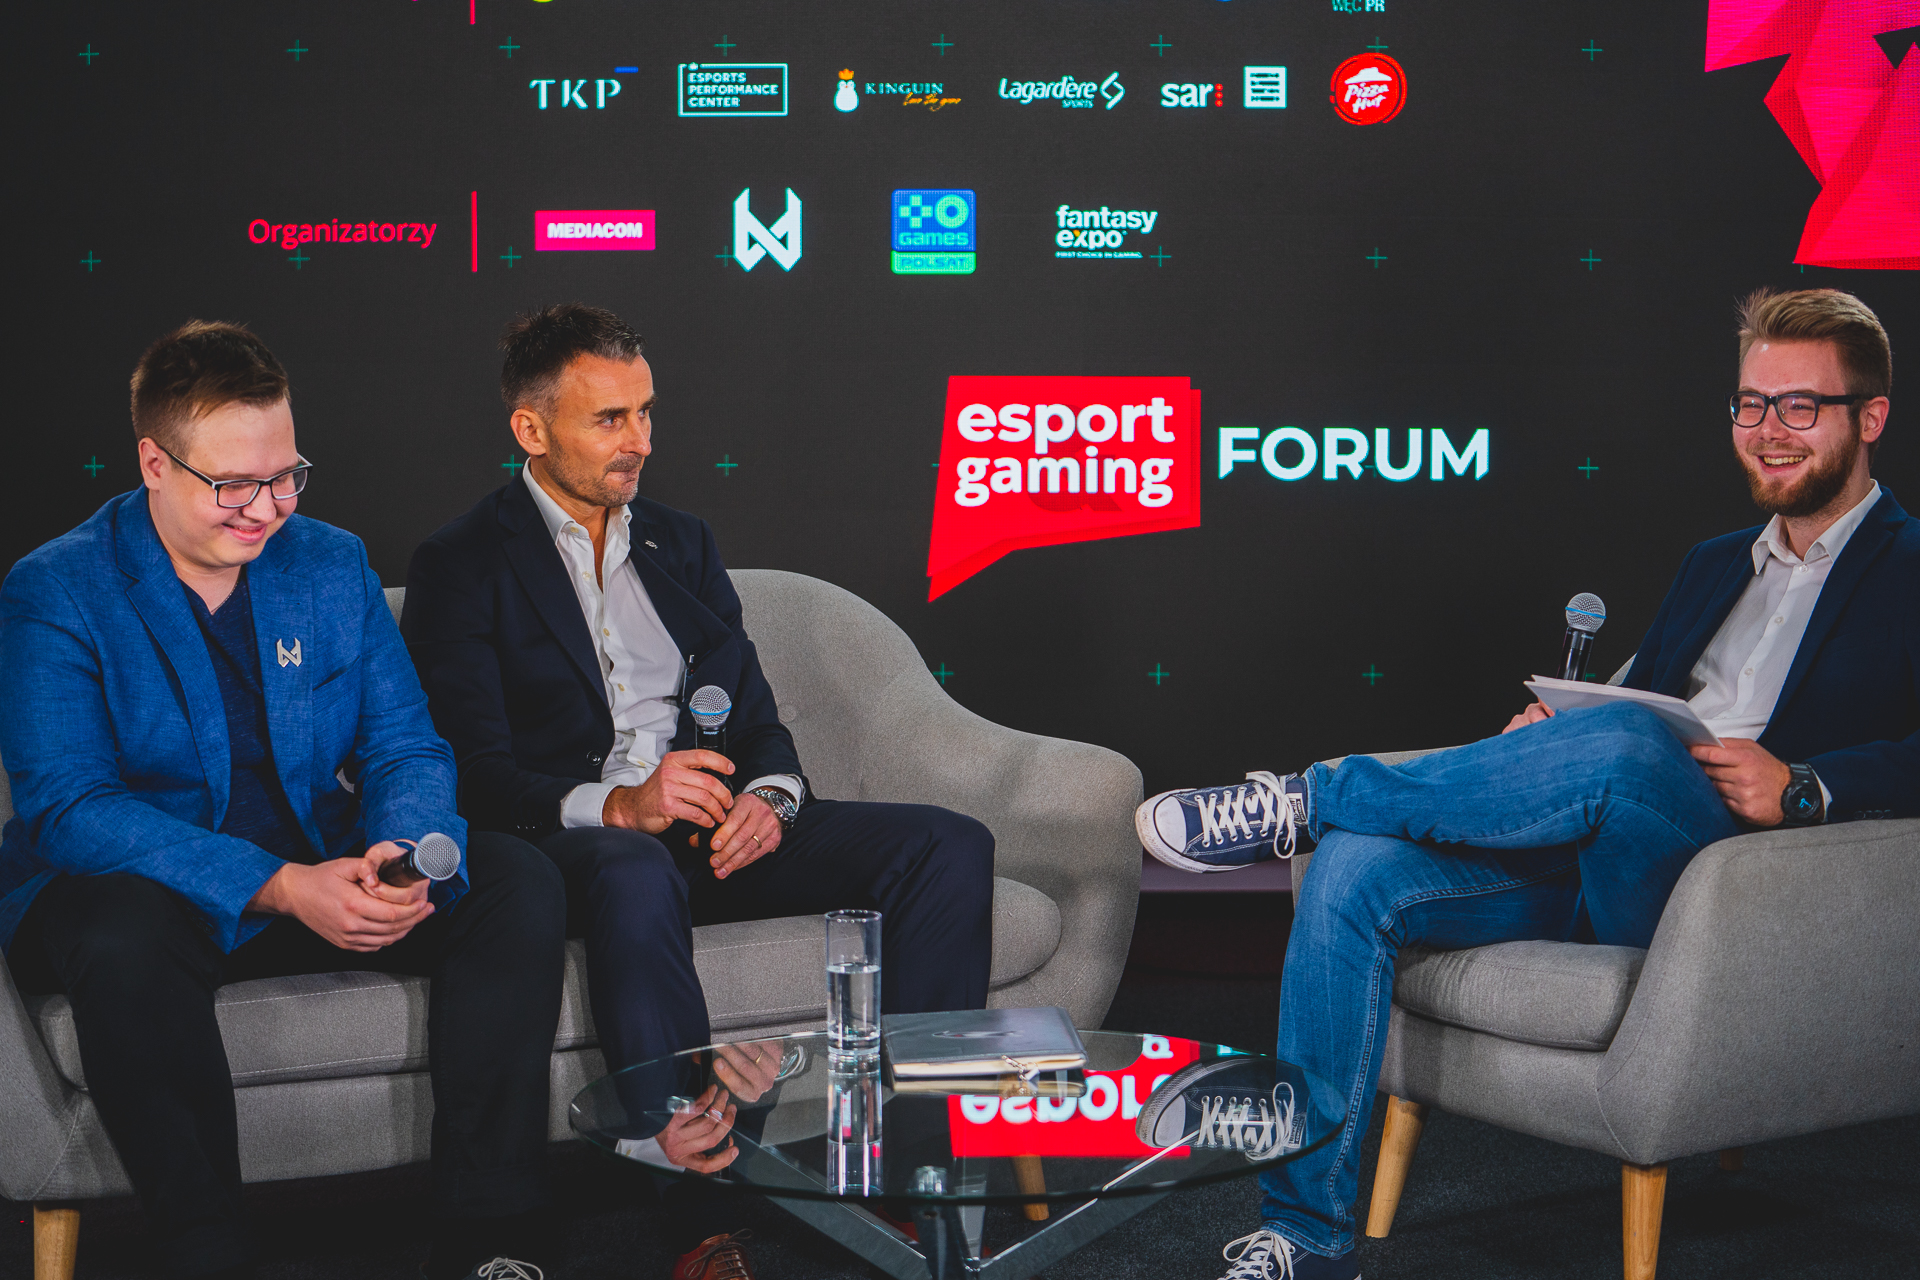 Esport & Gaming Forum (3)